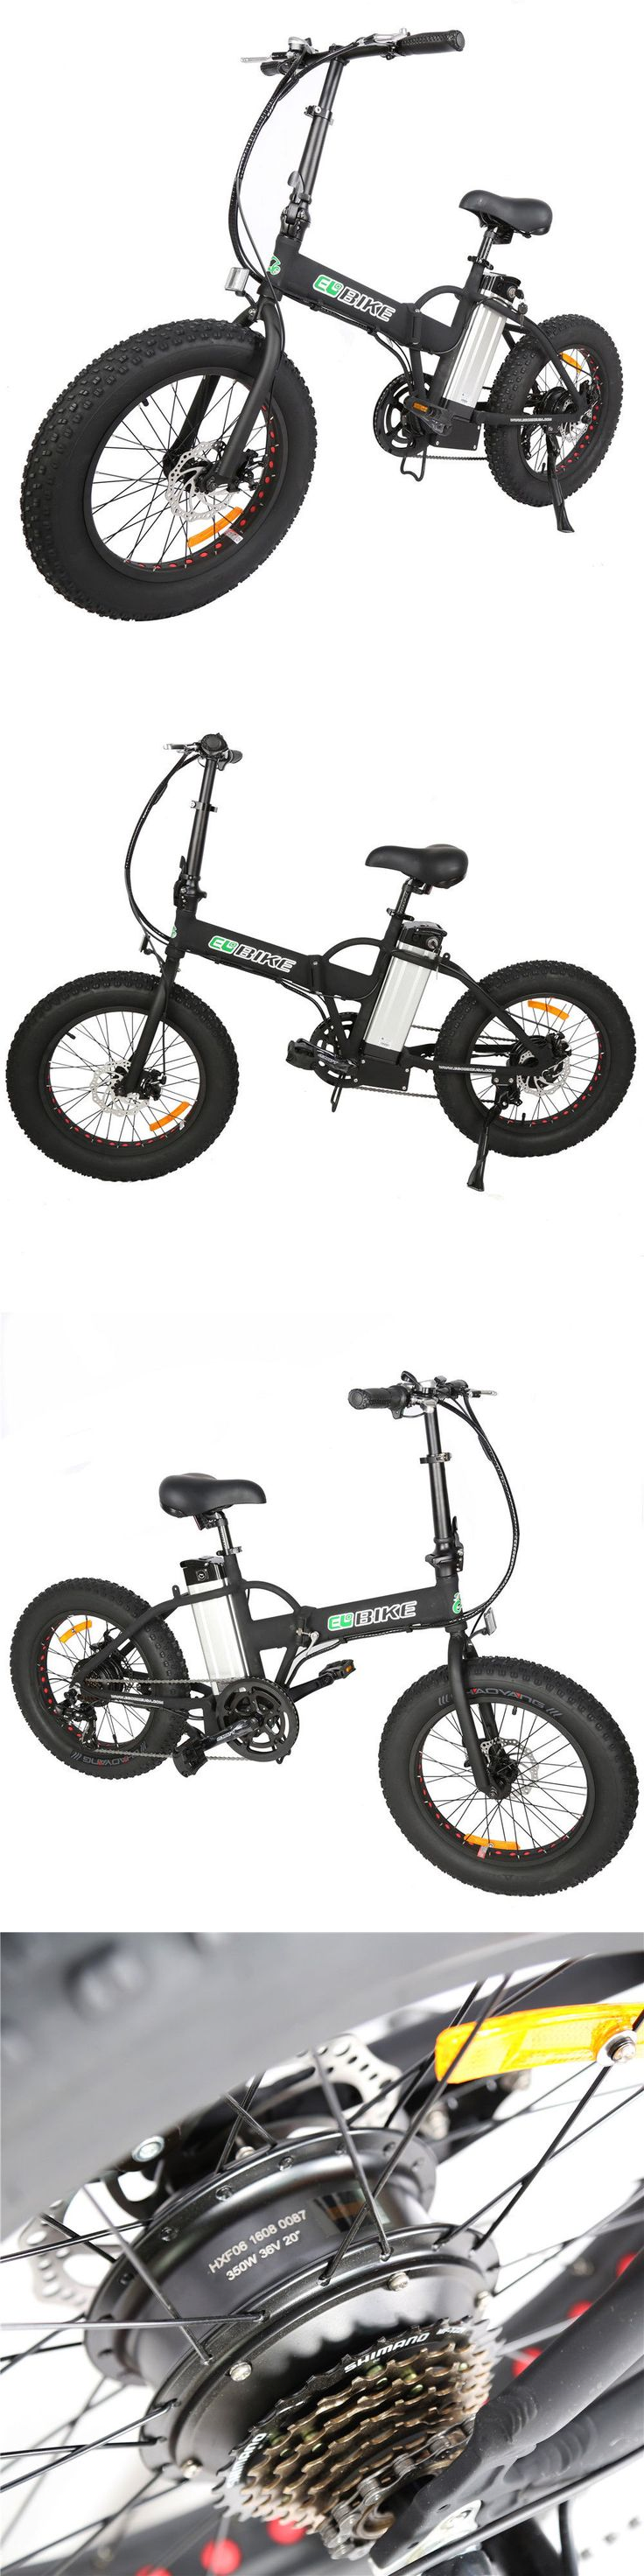 Electric Bicycles 74469: Electric Folding Bike Foldable Fat Tire Bicycle Beach Cruiser Snow E-Bike 20*4 BUY IT NOW ONLY: $820.0